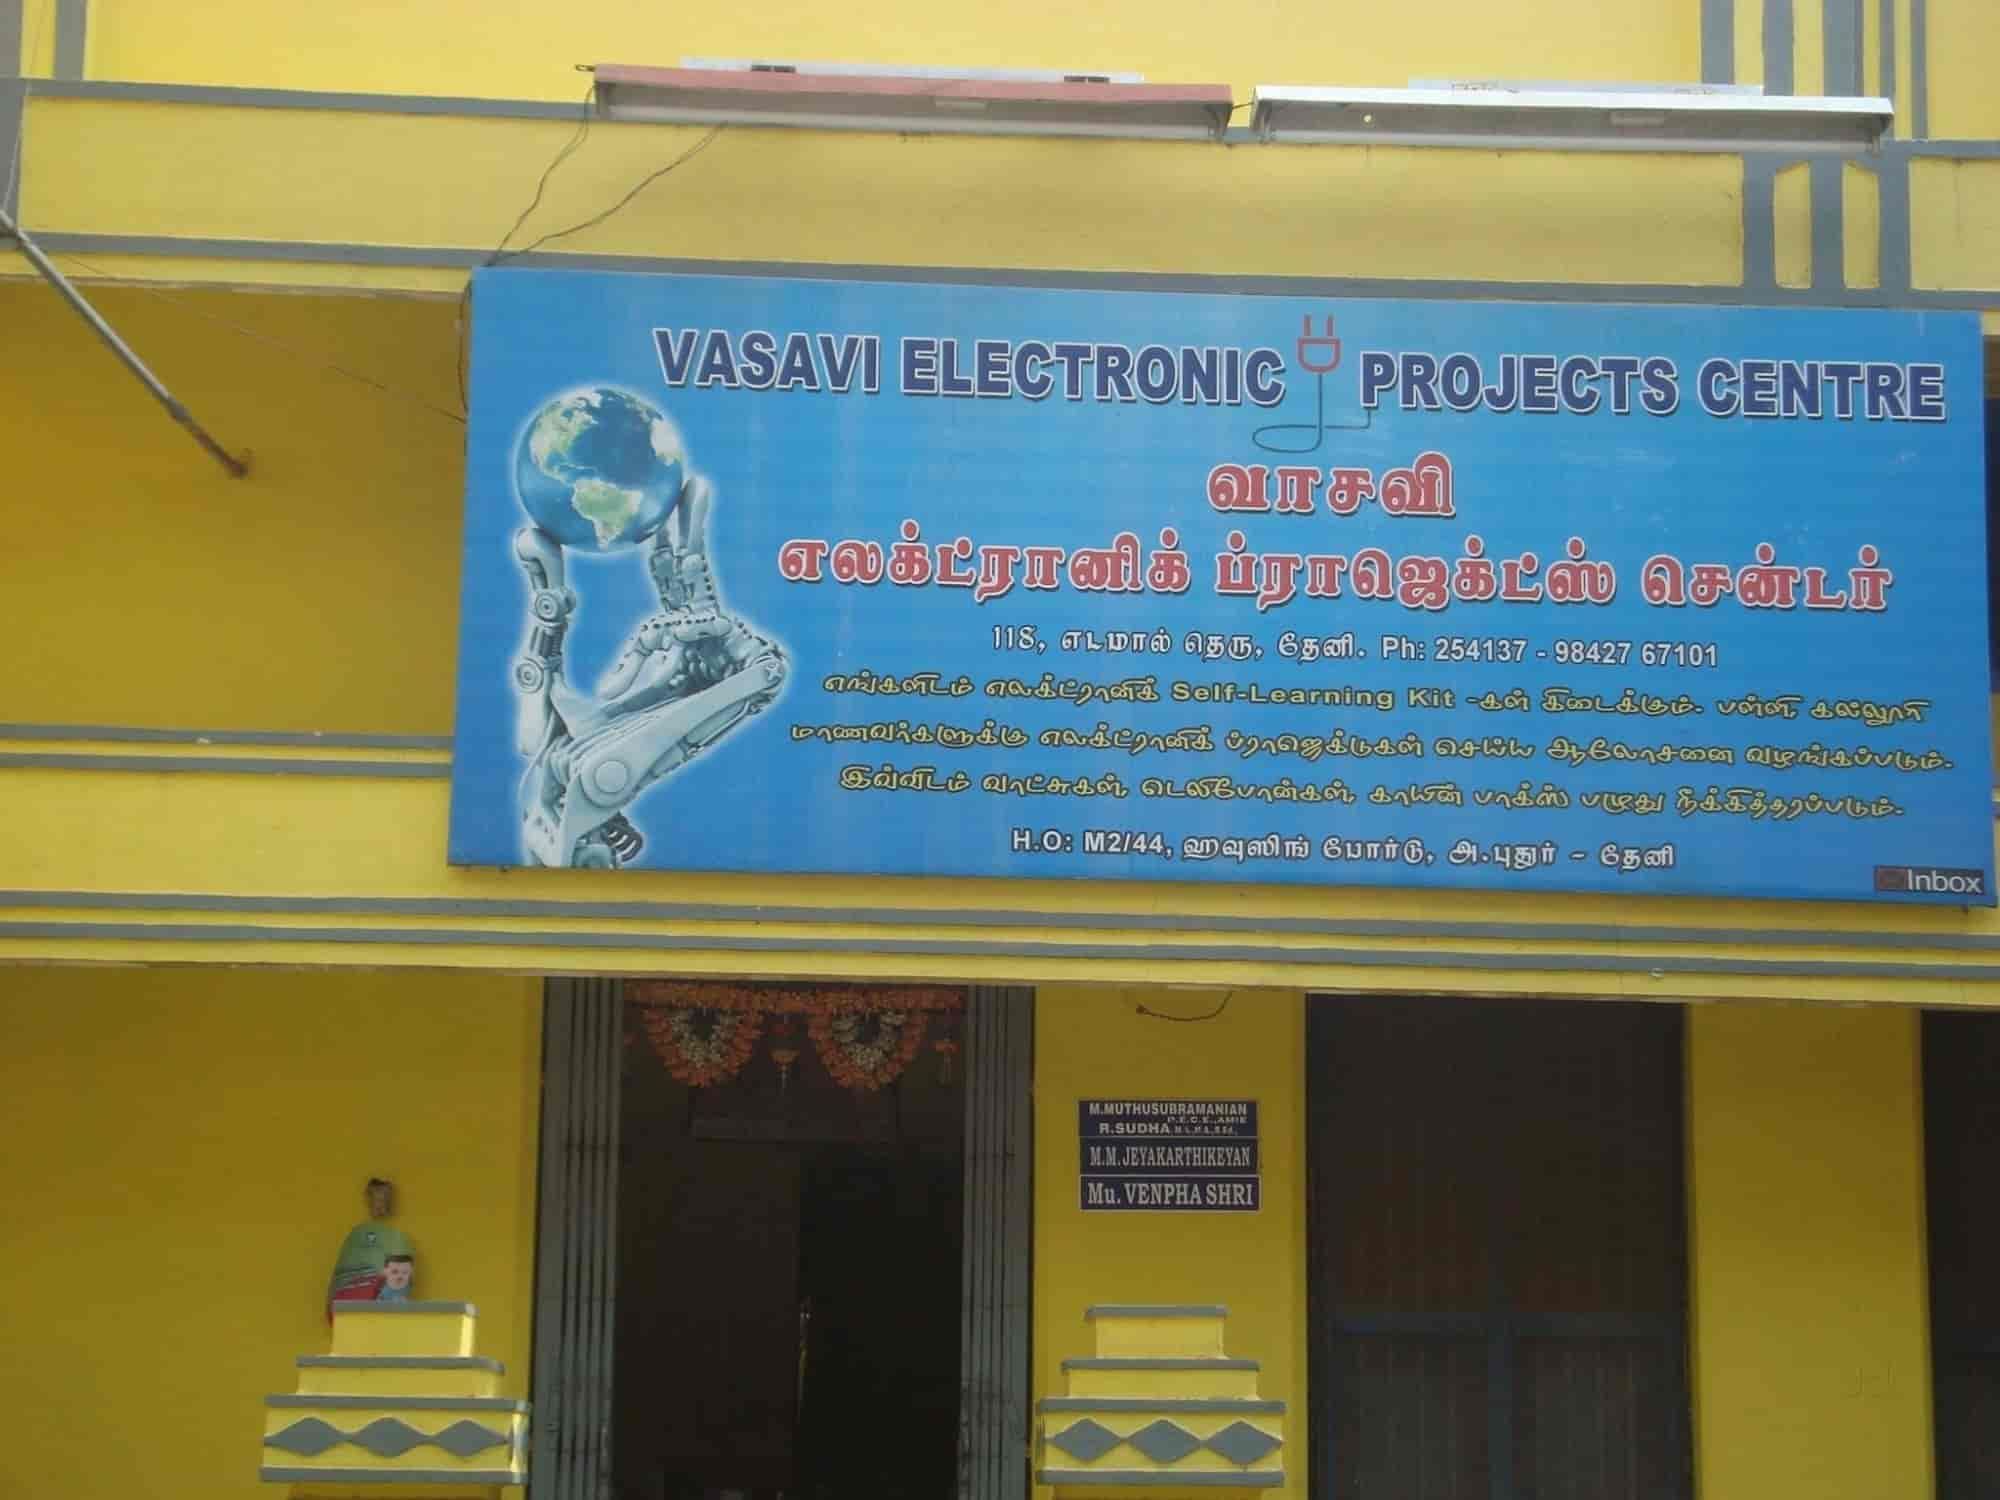 Vasavi Electronic Projects Center Project Work For Students In Circuit Theni Justdial